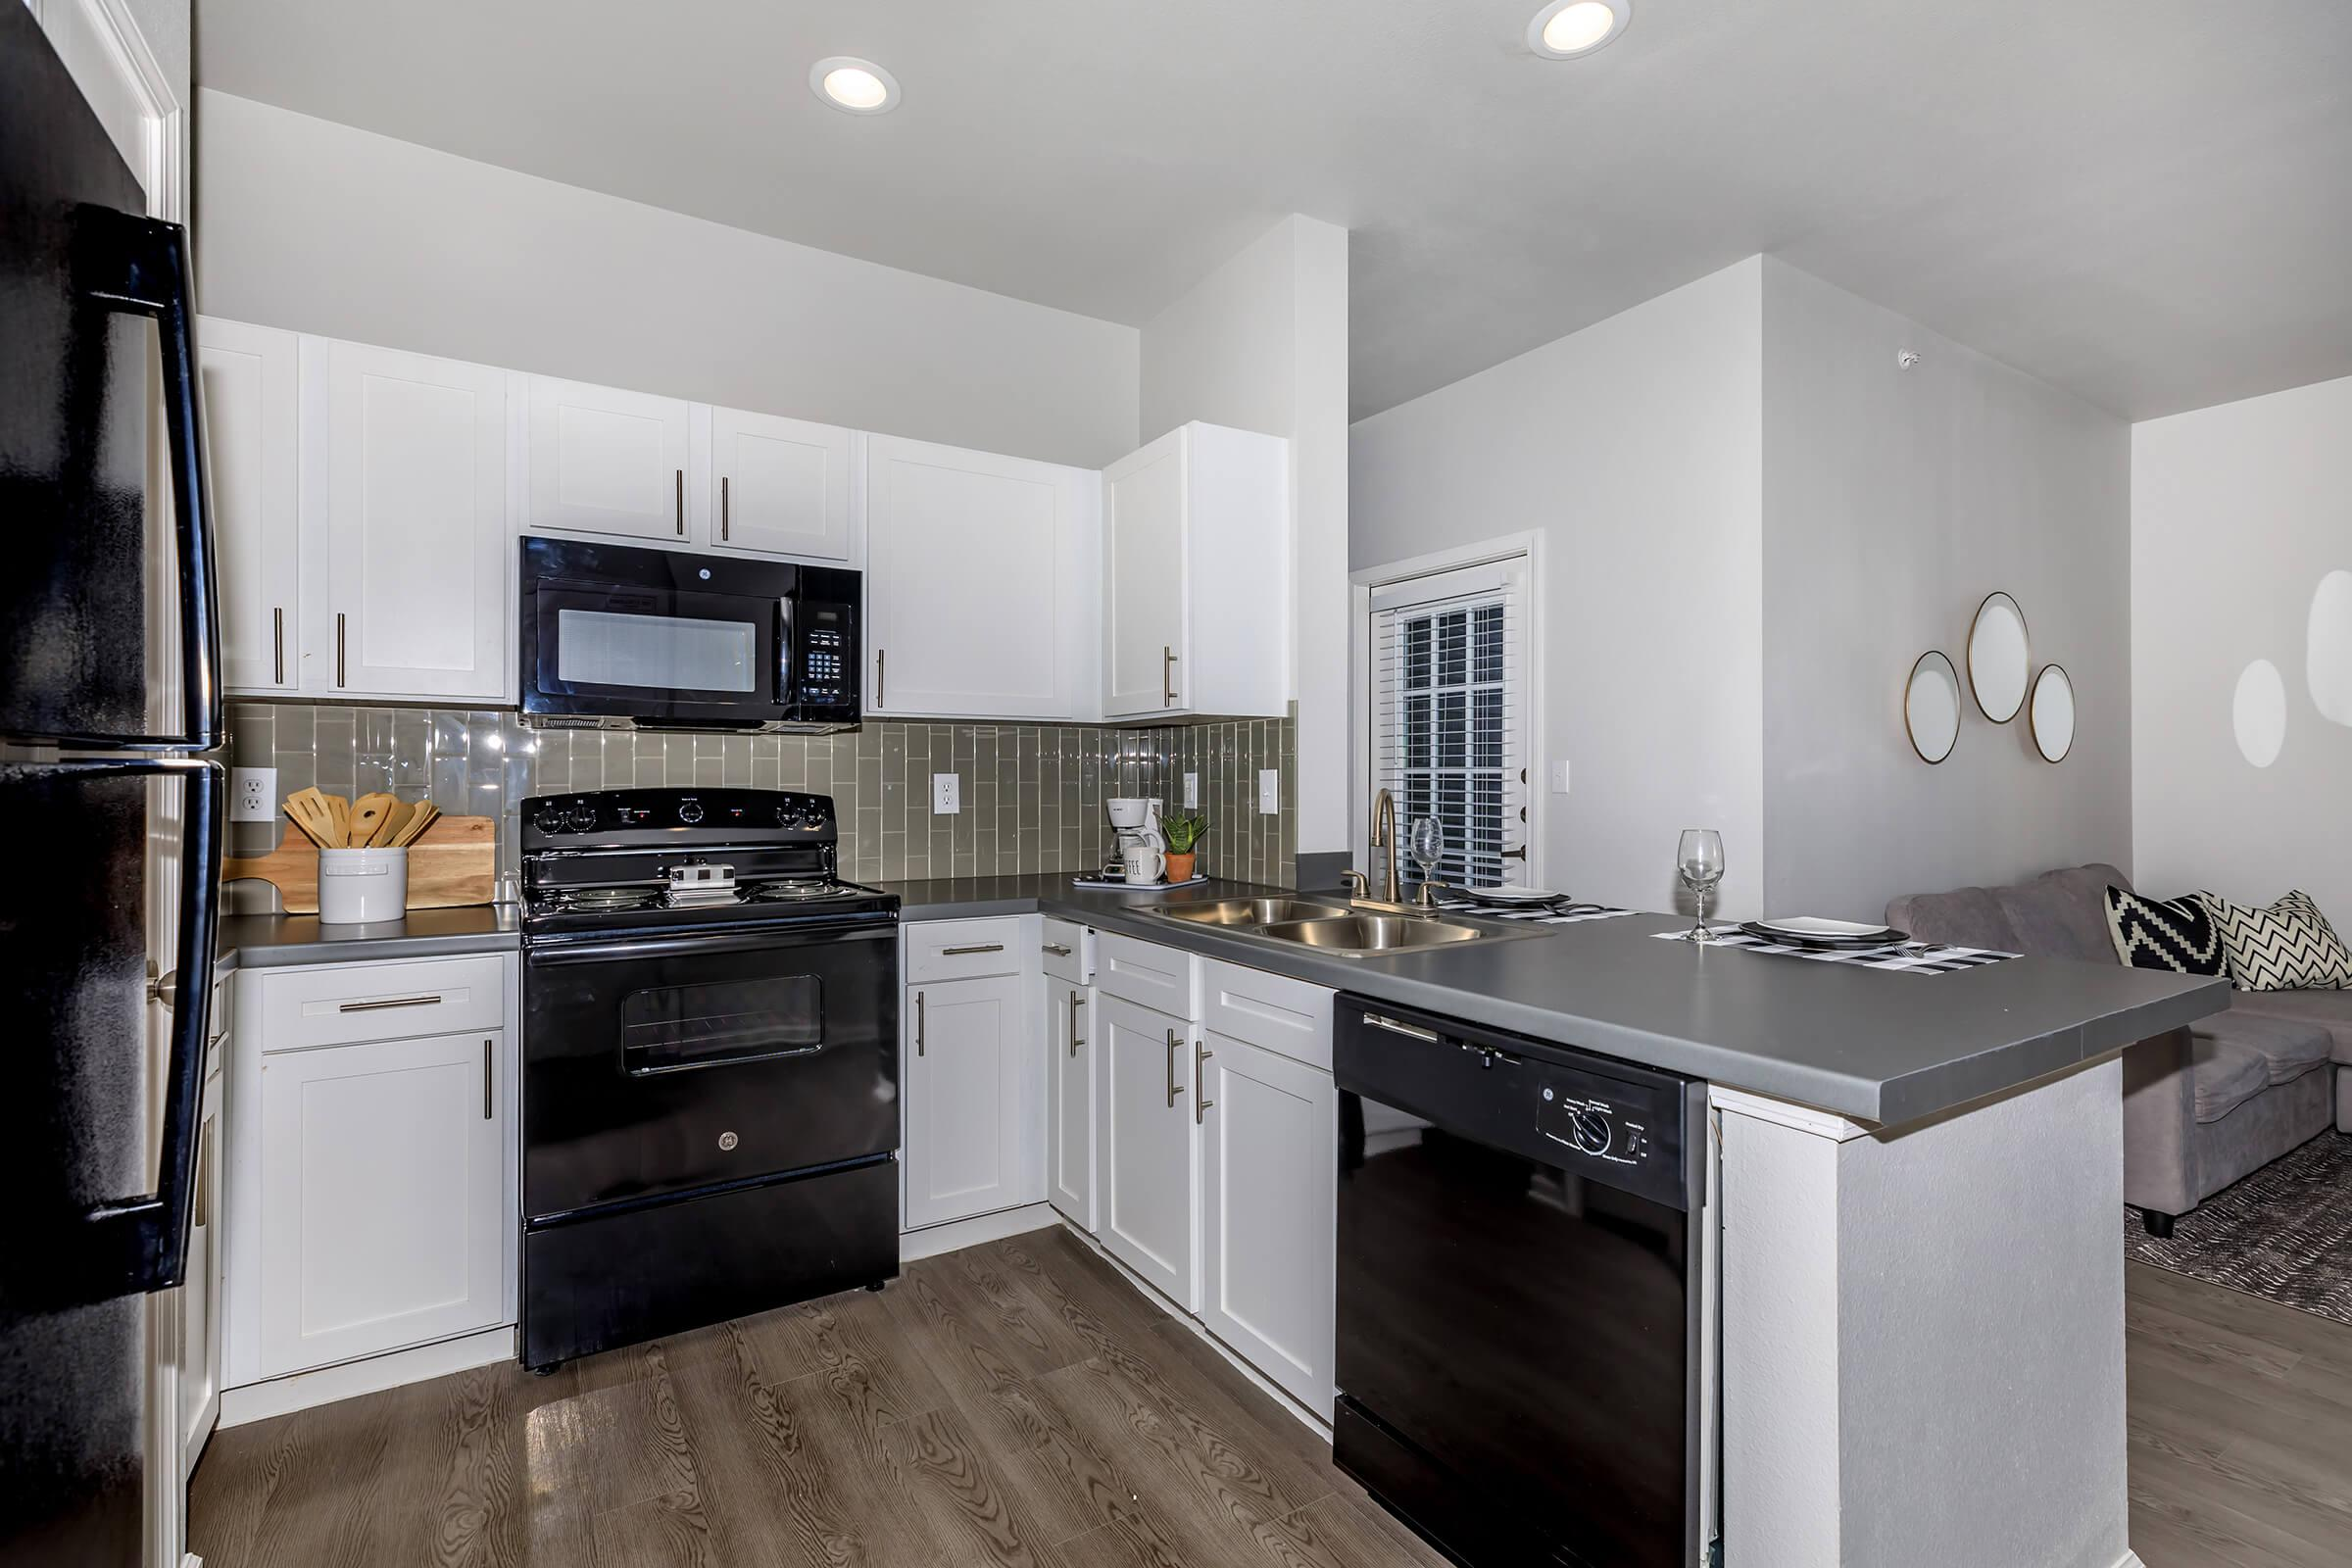 a large kitchen with stainless steel appliances